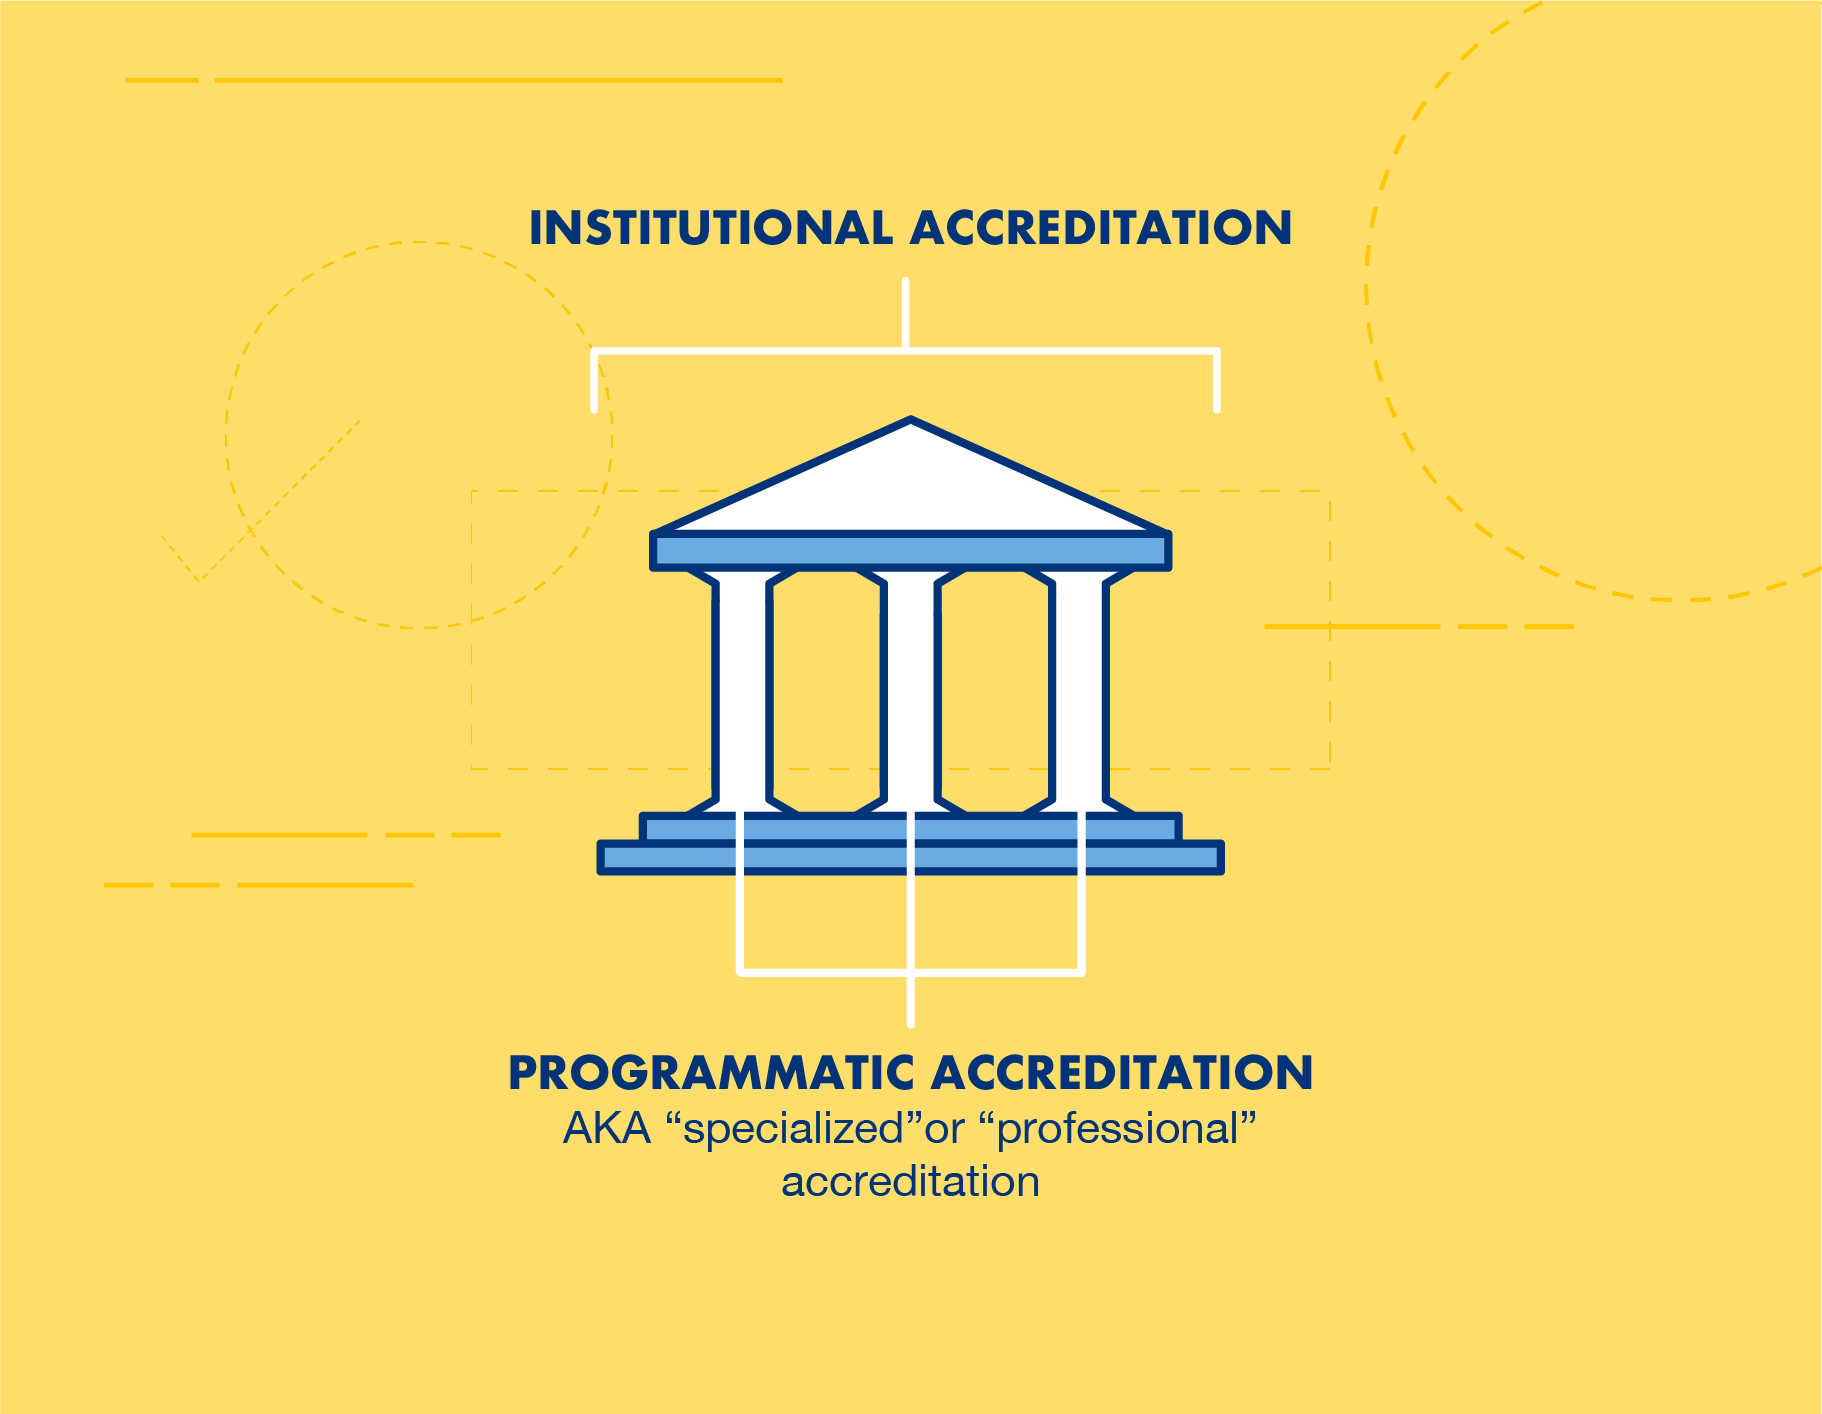 Difference between institutional accreditation and programmatic accreditation